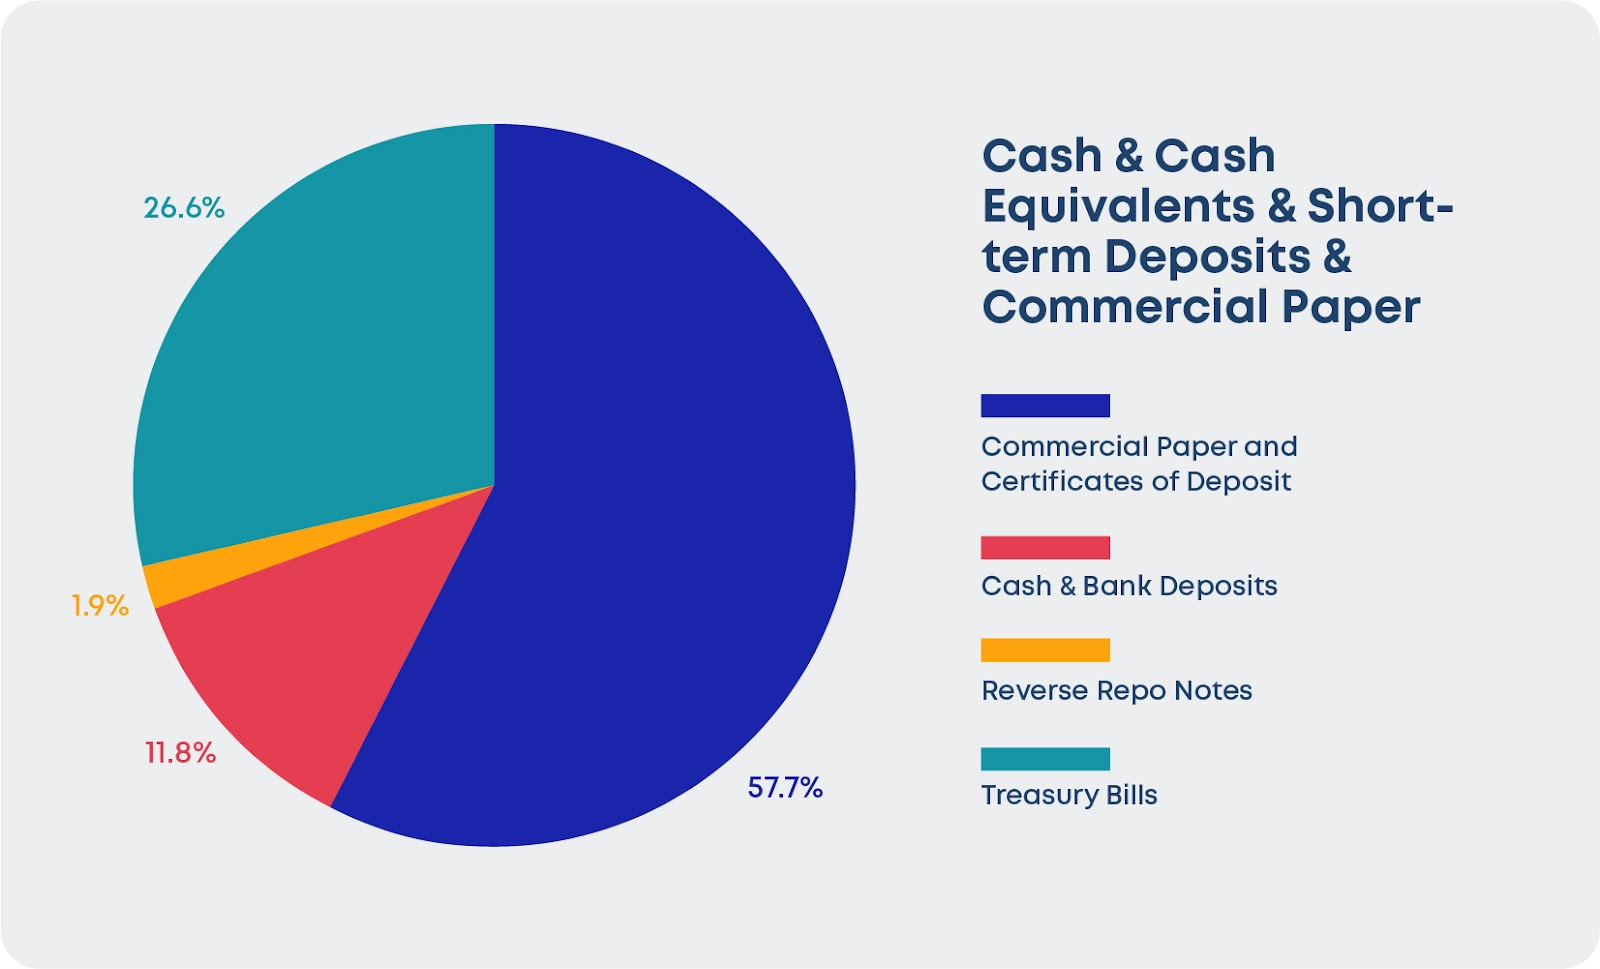 Breakdown of Tether's Cash, Cash Equivalents, Short-Term Deposits and Commercial Paper